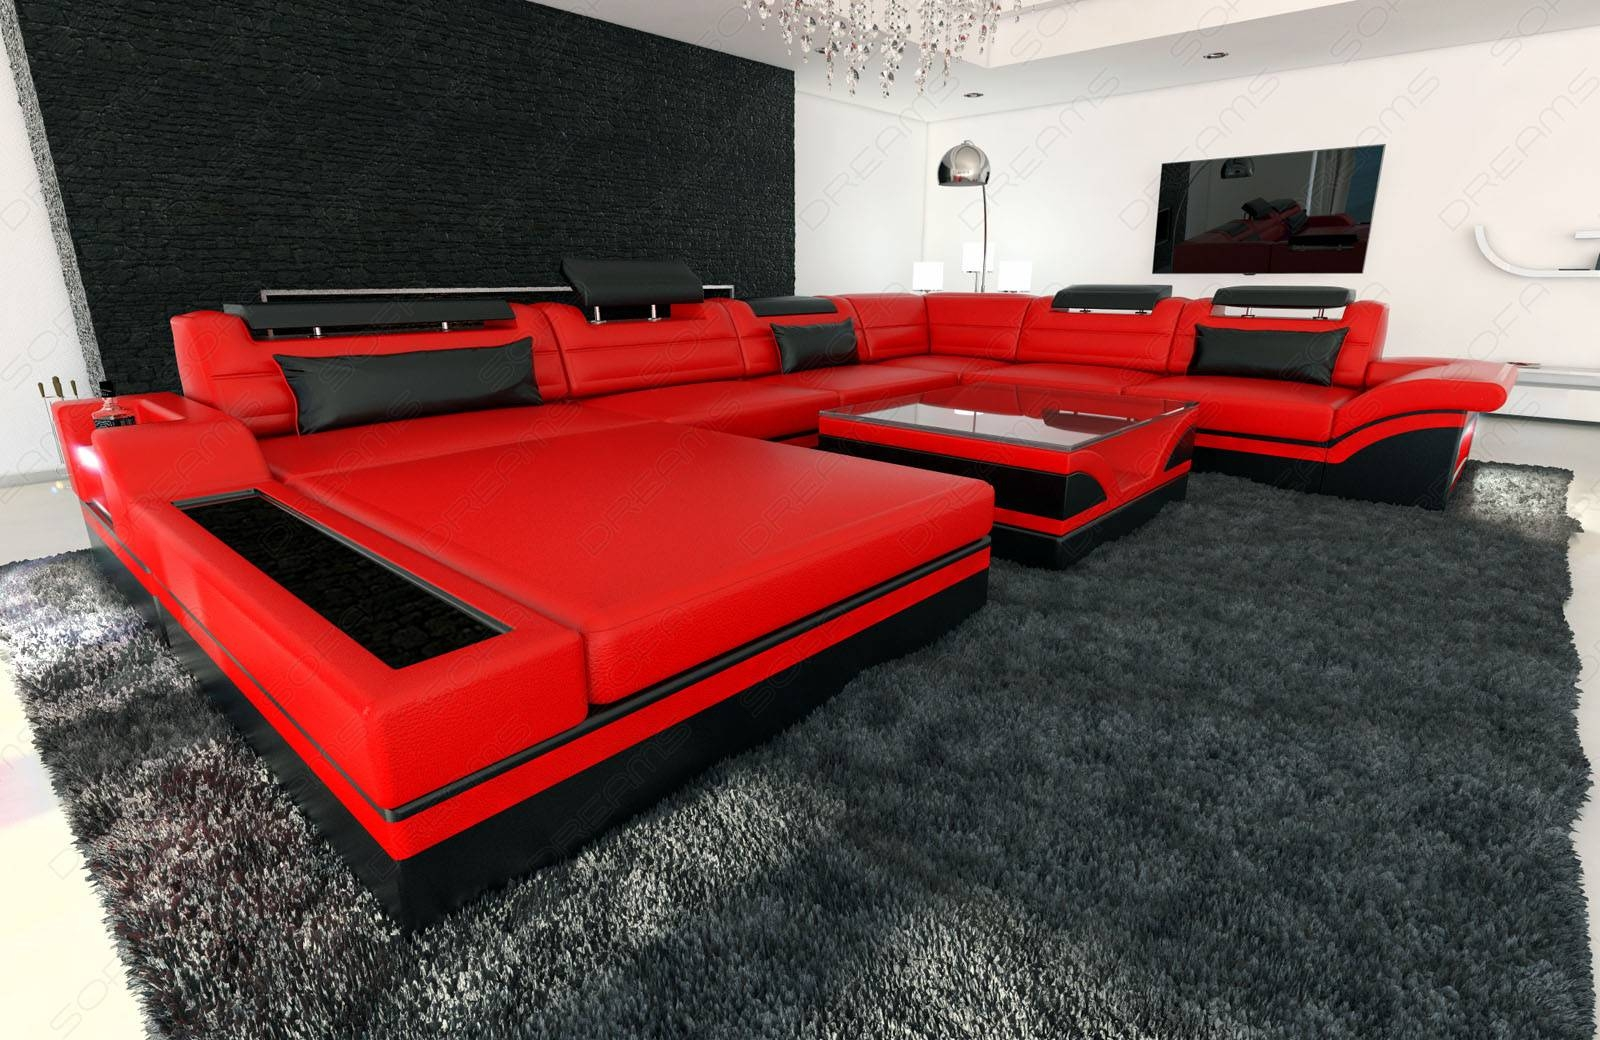 Design Sectional Sofa Mezzo Xxl With Led Lights Red Black | Ebay with regard to Red Black Sectional Sofa (Image 10 of 30)